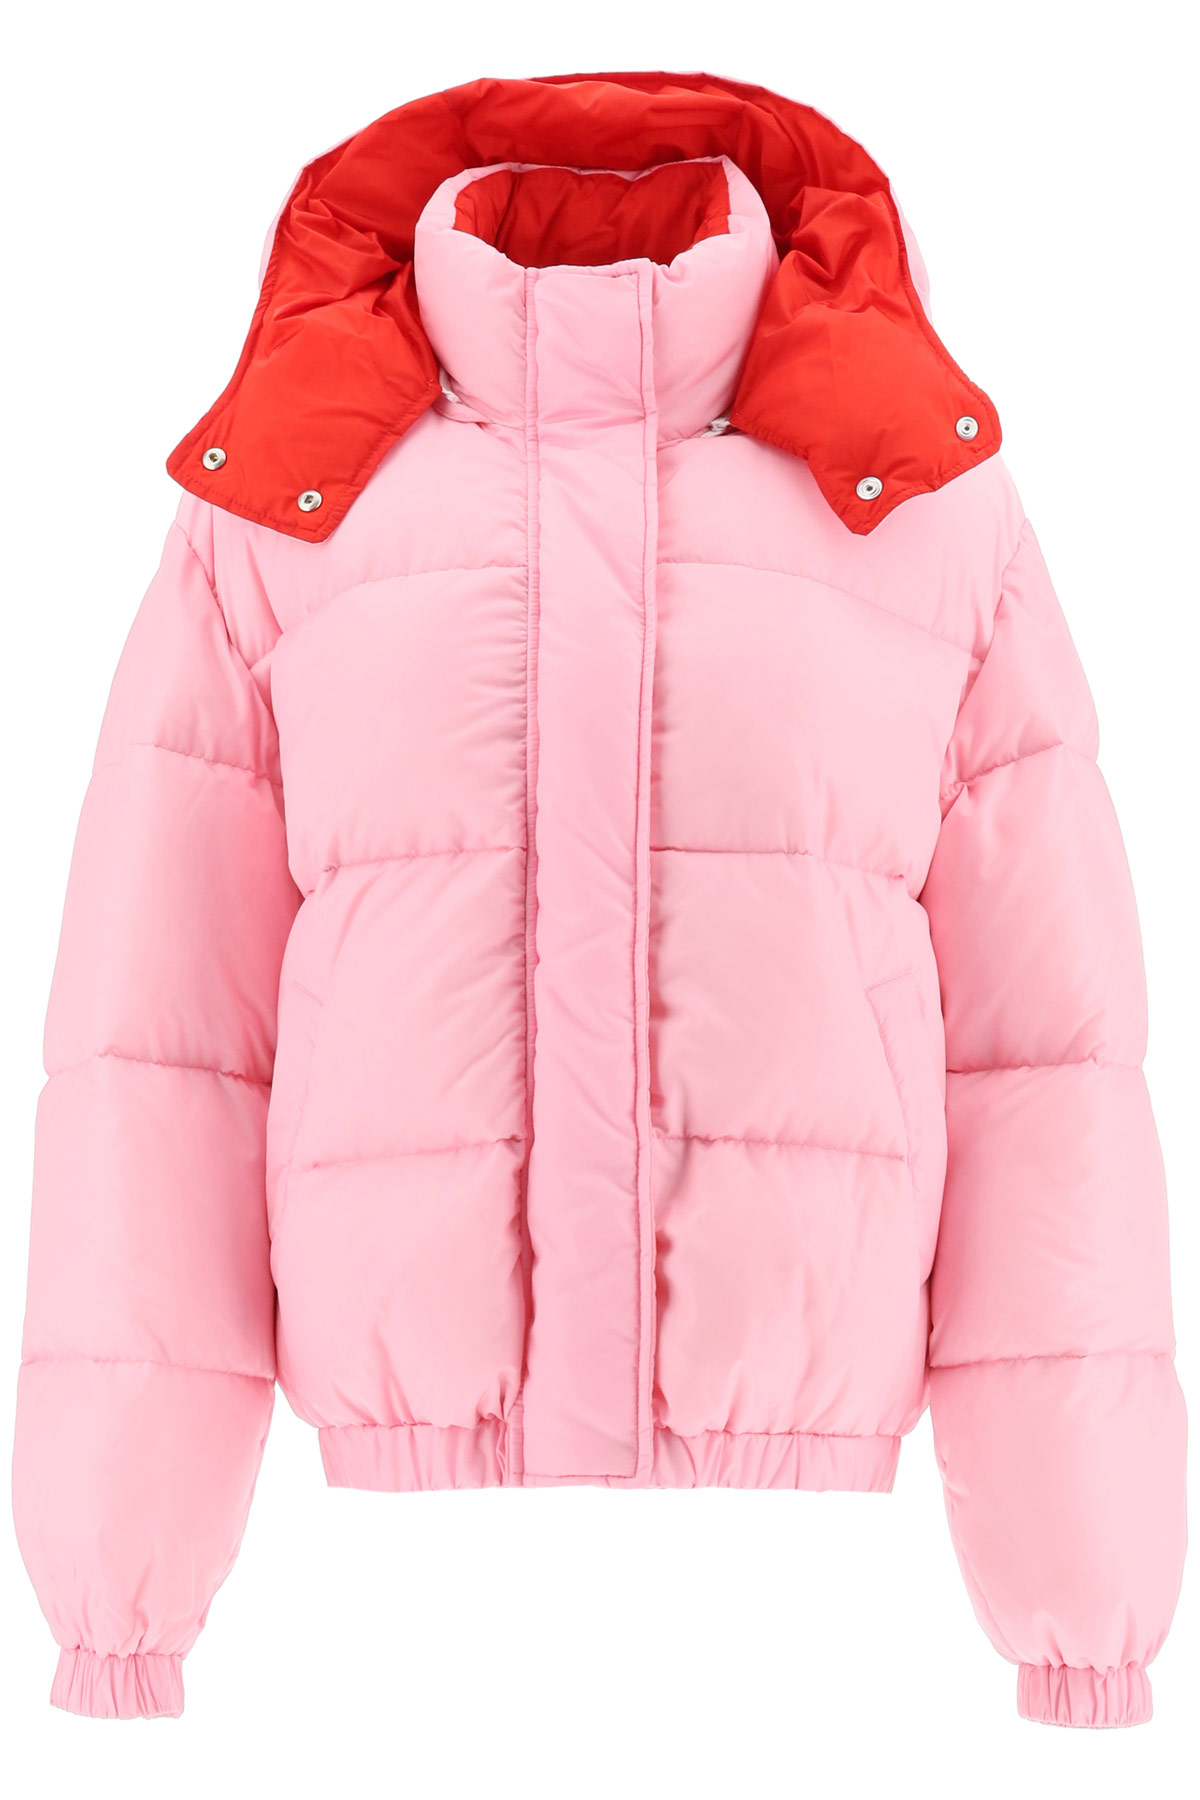 MSGM HOODED DOWN JACKET 44 Pink, Red